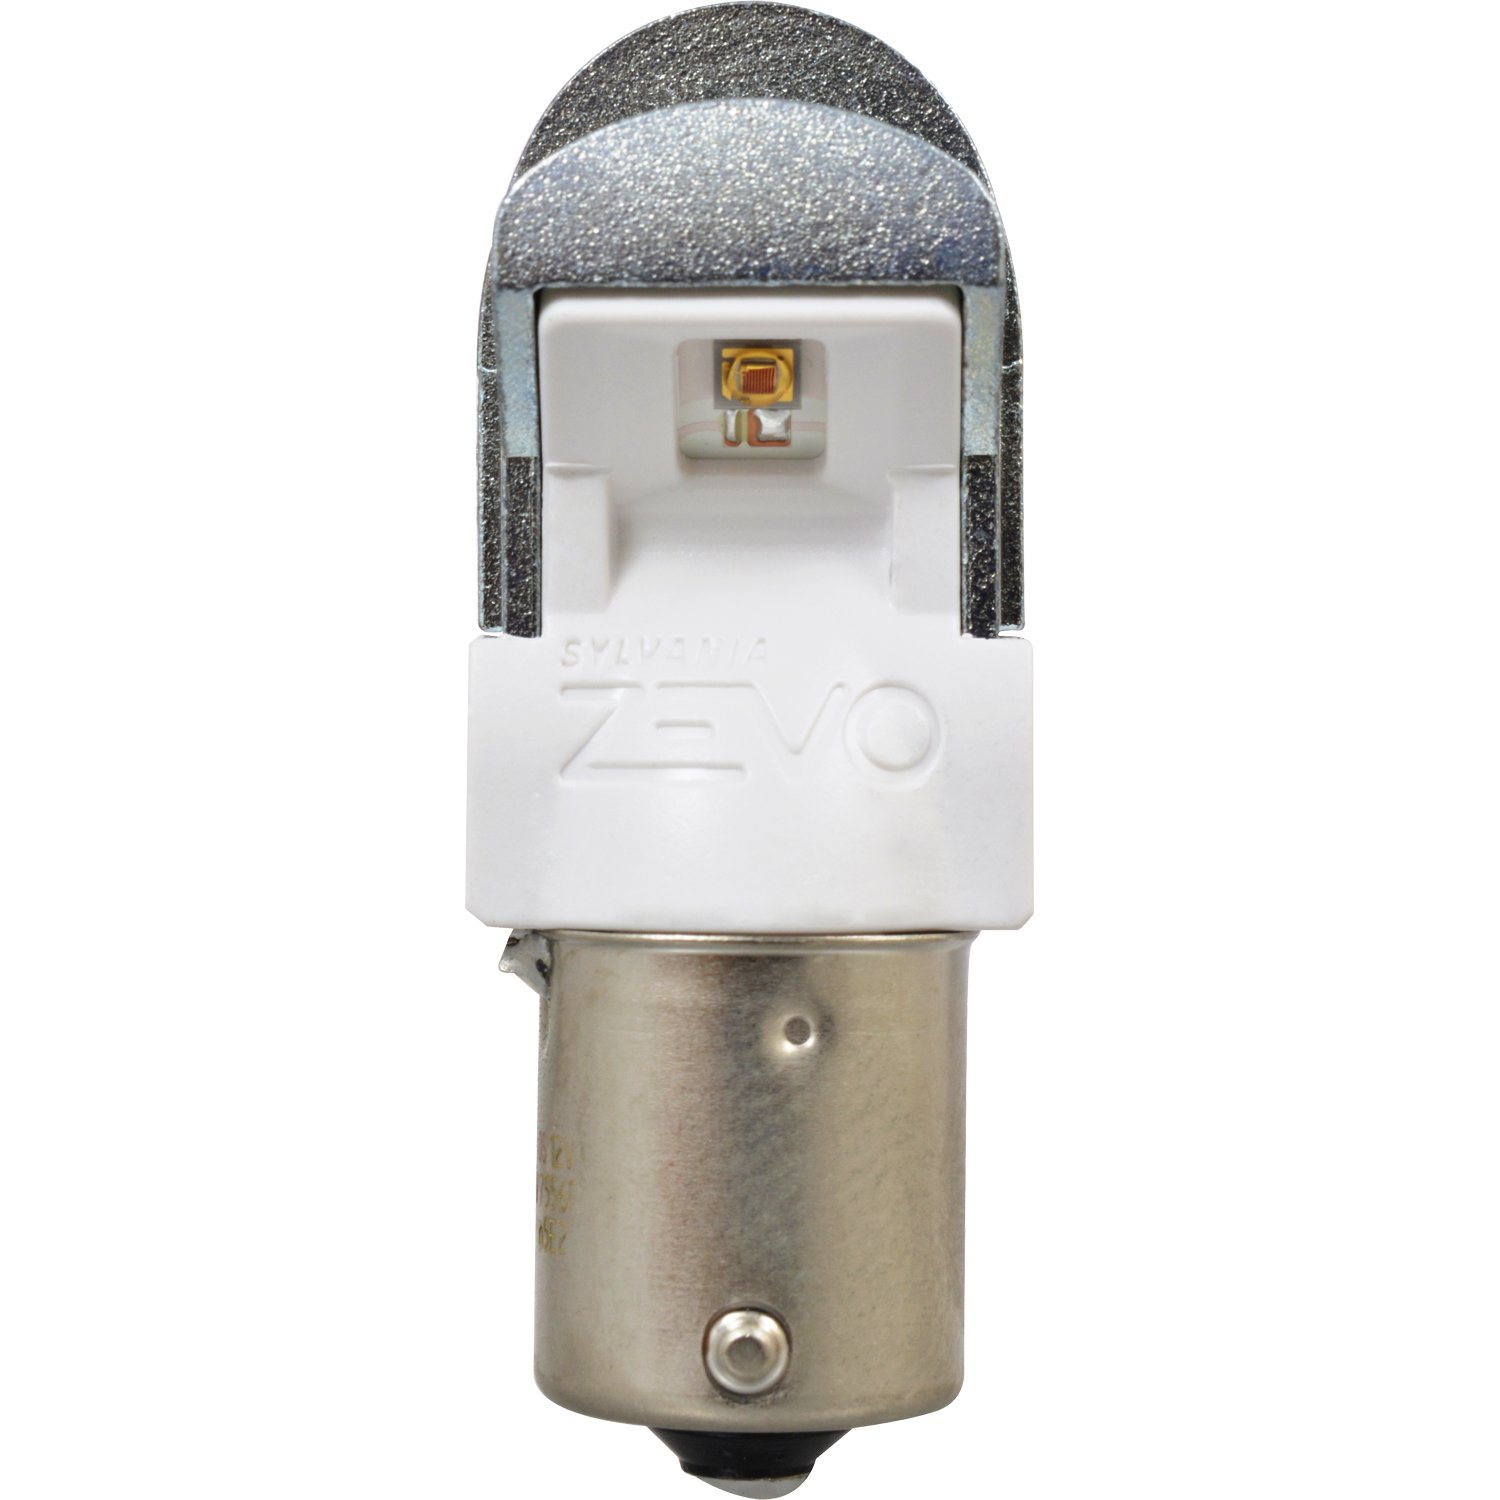 Bright LED Bulb 1156 ZEVO LED Red Bulb Ideal for Stop and Tail Lights SYLVANIA Contains 2 Bulbs